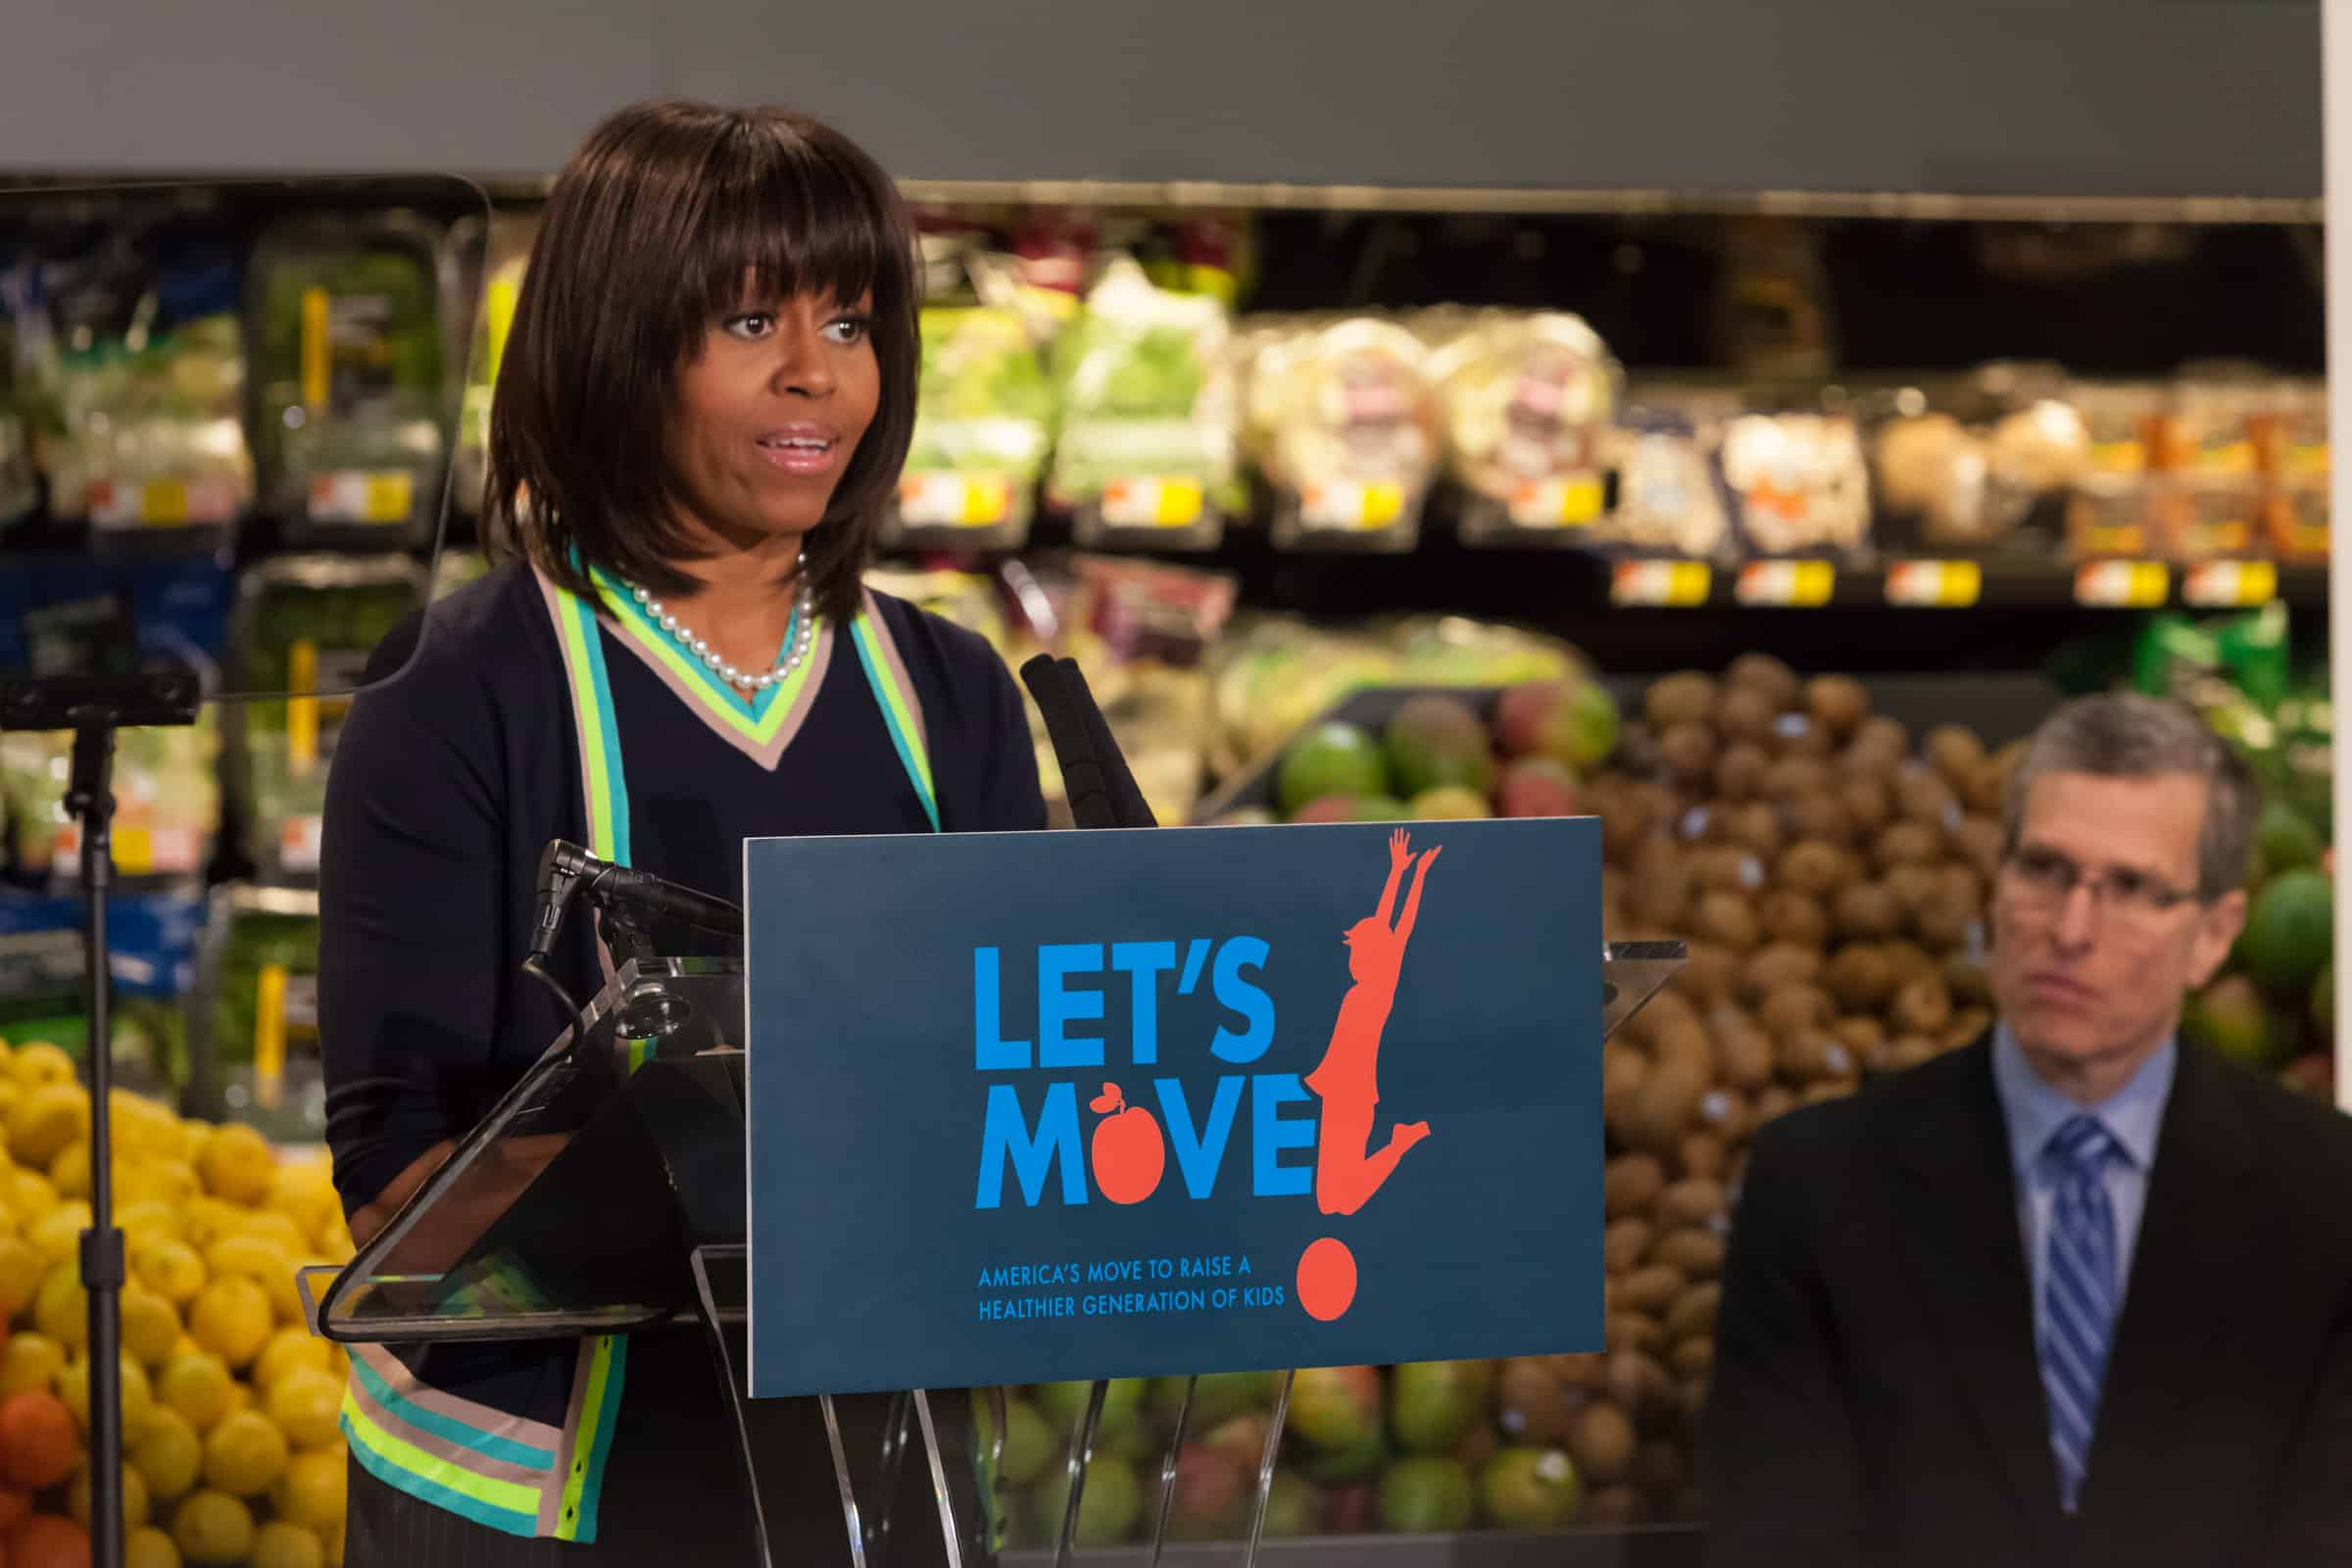 walmart's partnership with michelle obama